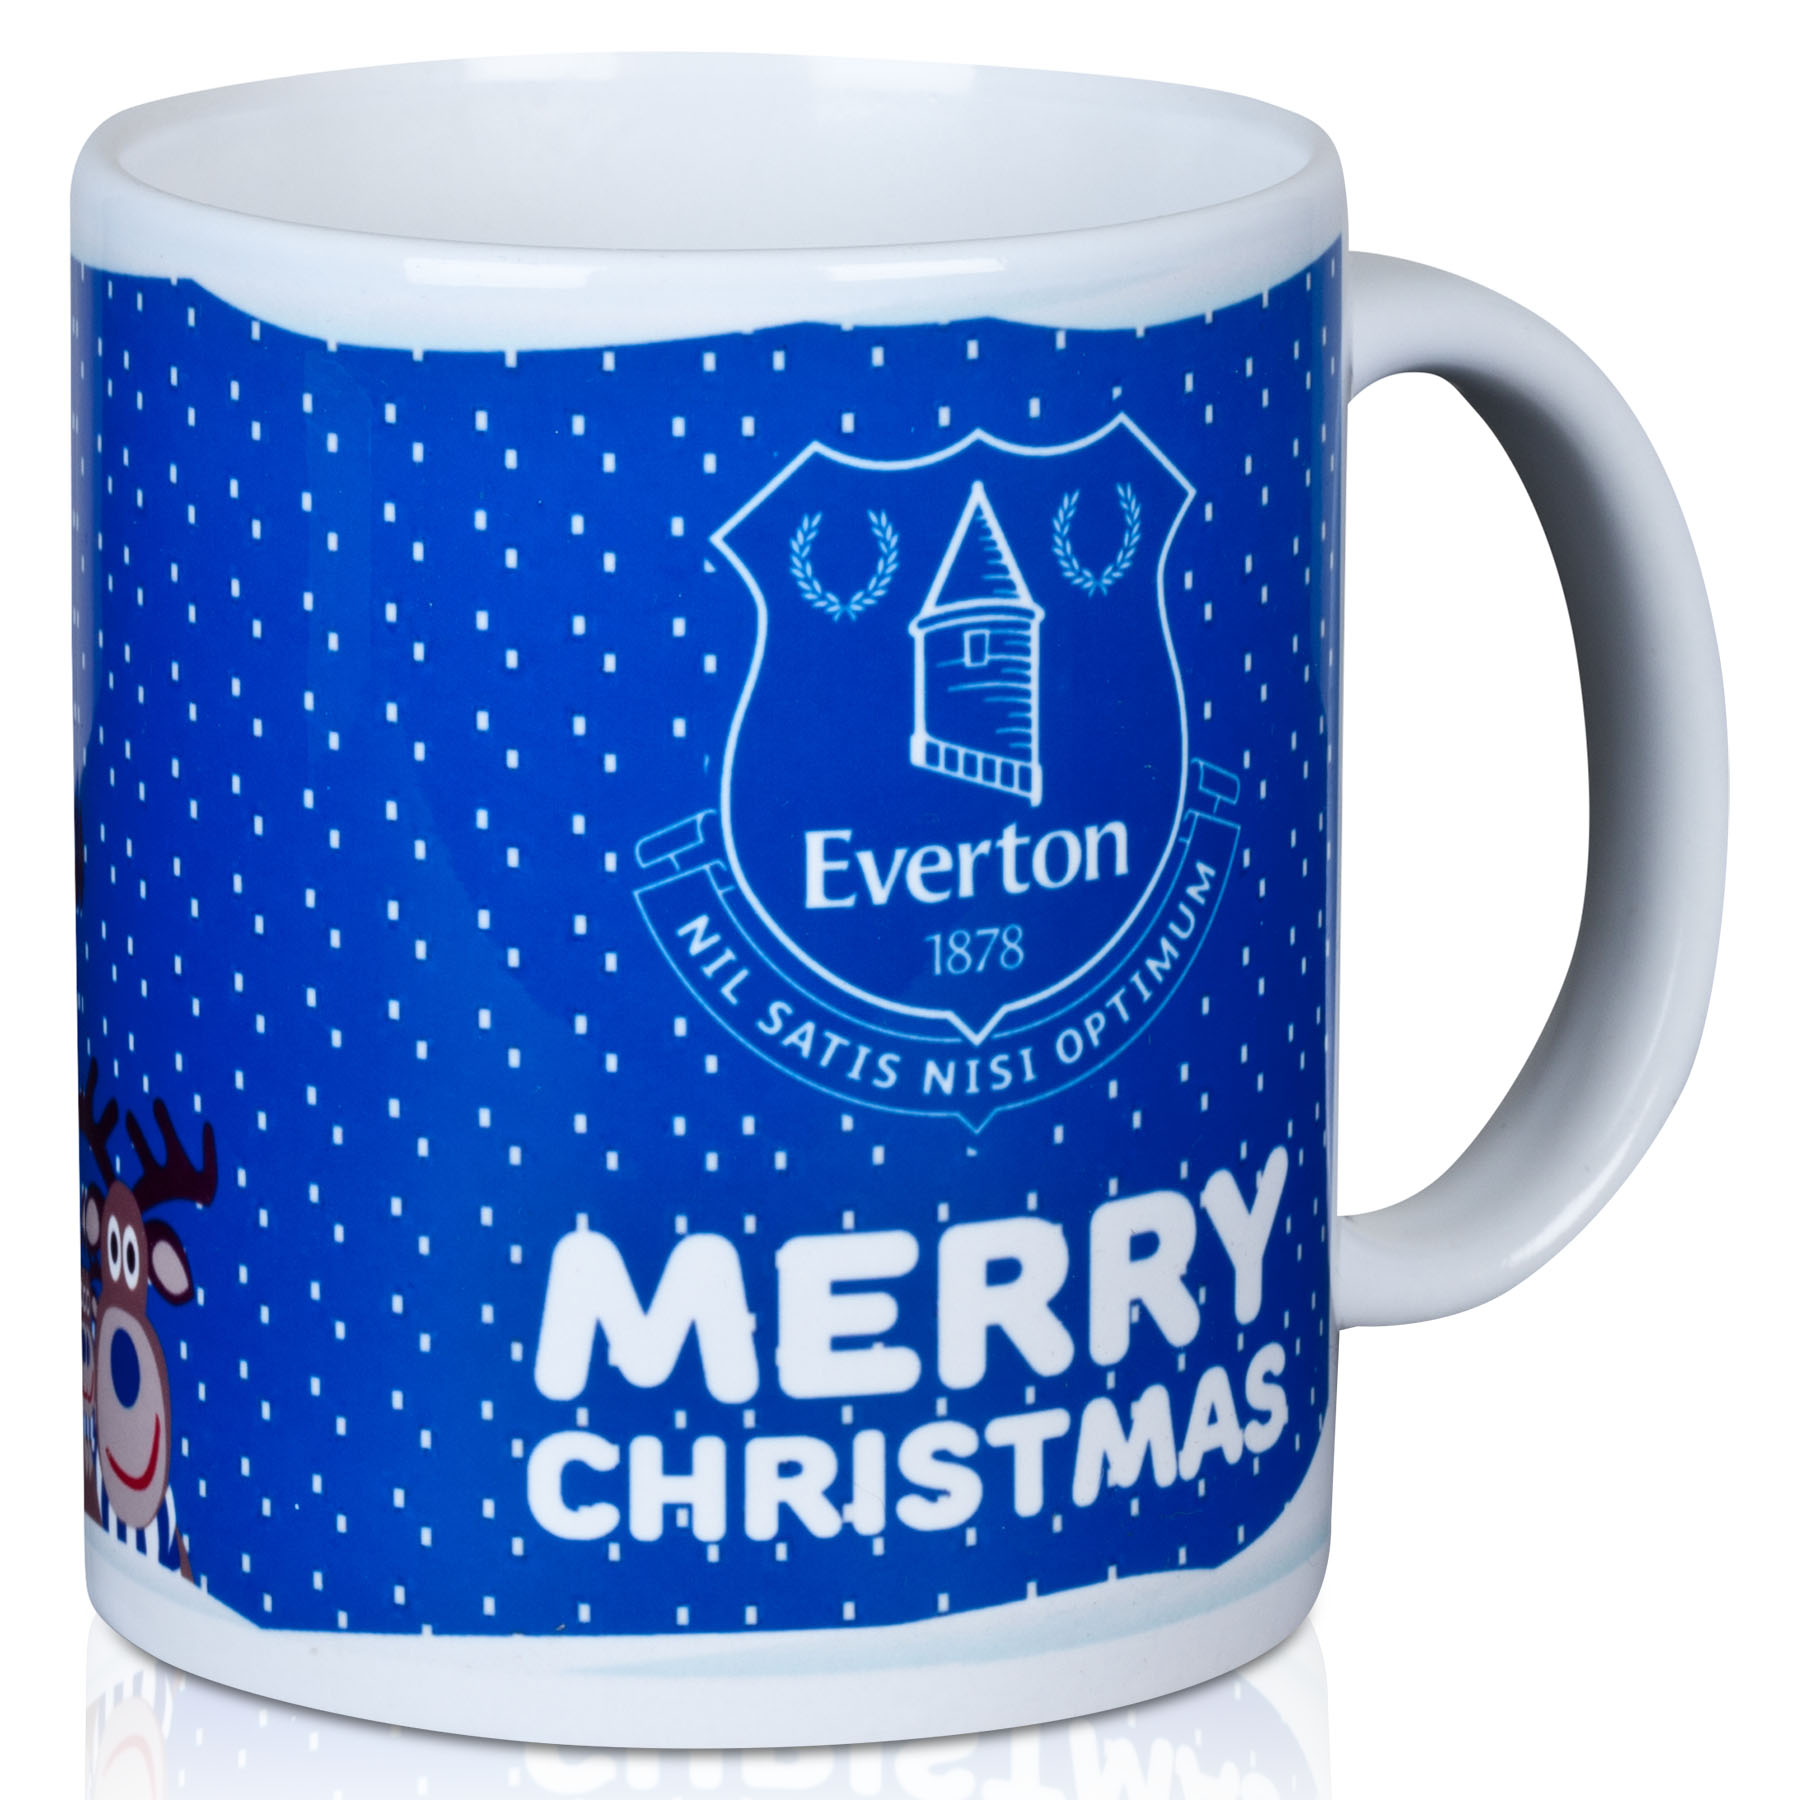 Everton Christmas Mug in Gift Box